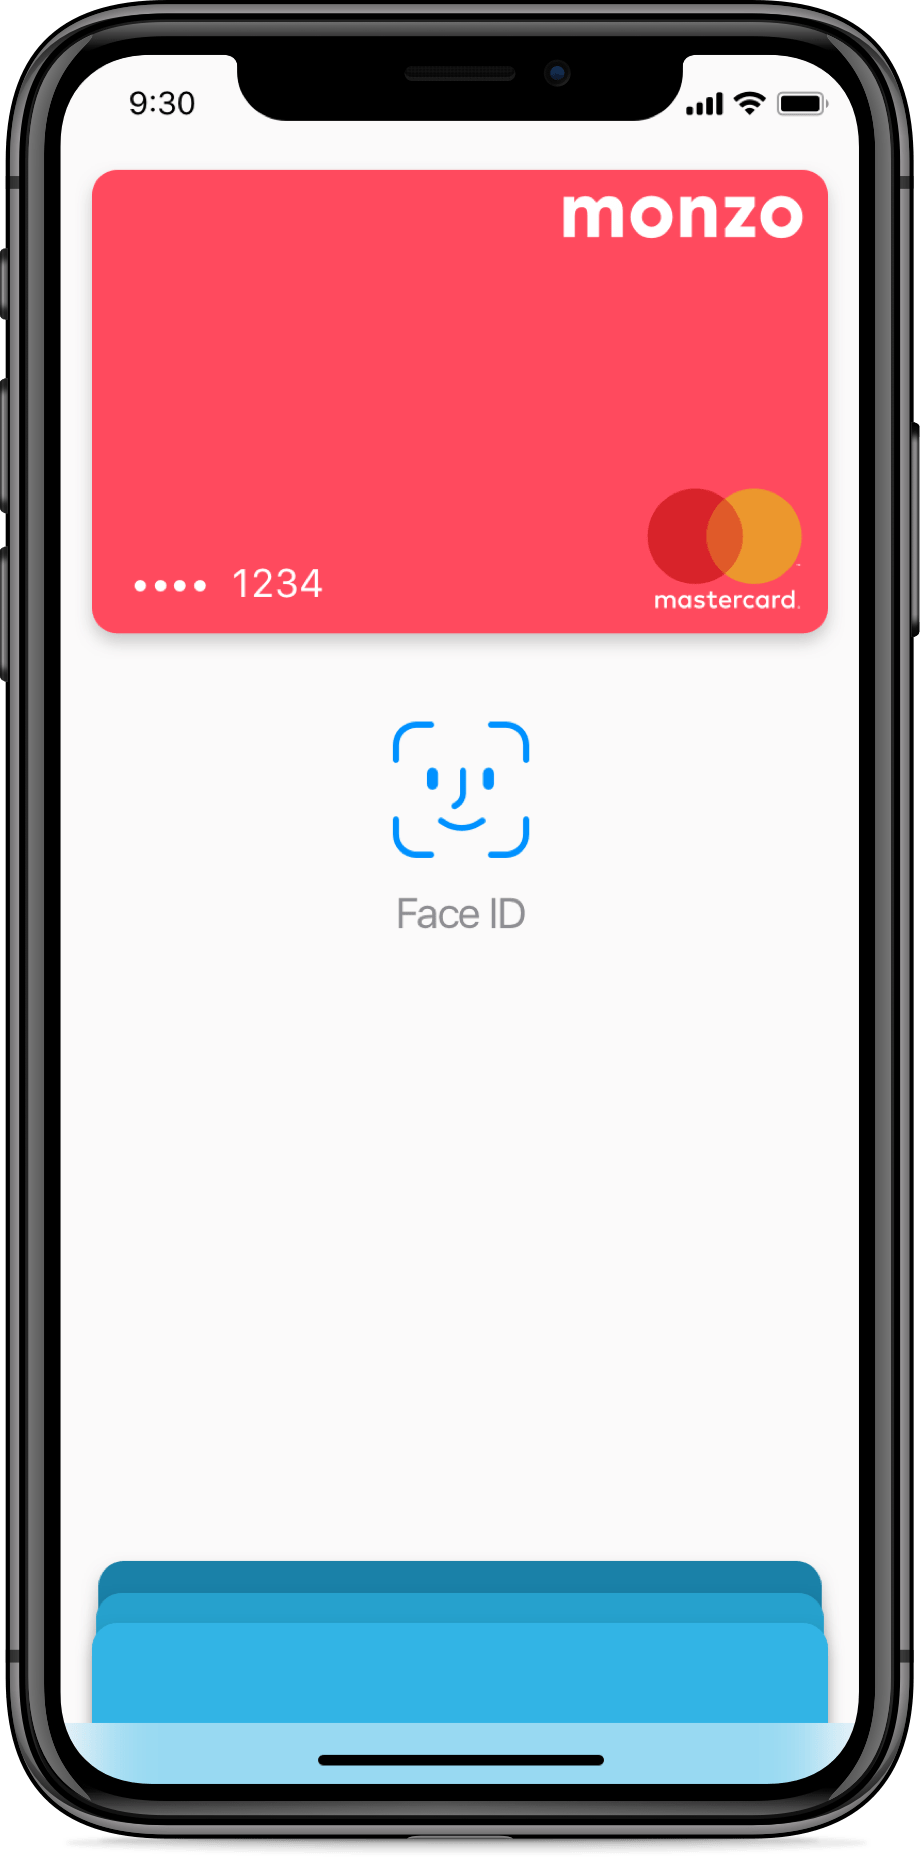 iPhone X with a Monzo Card on Apple Pay